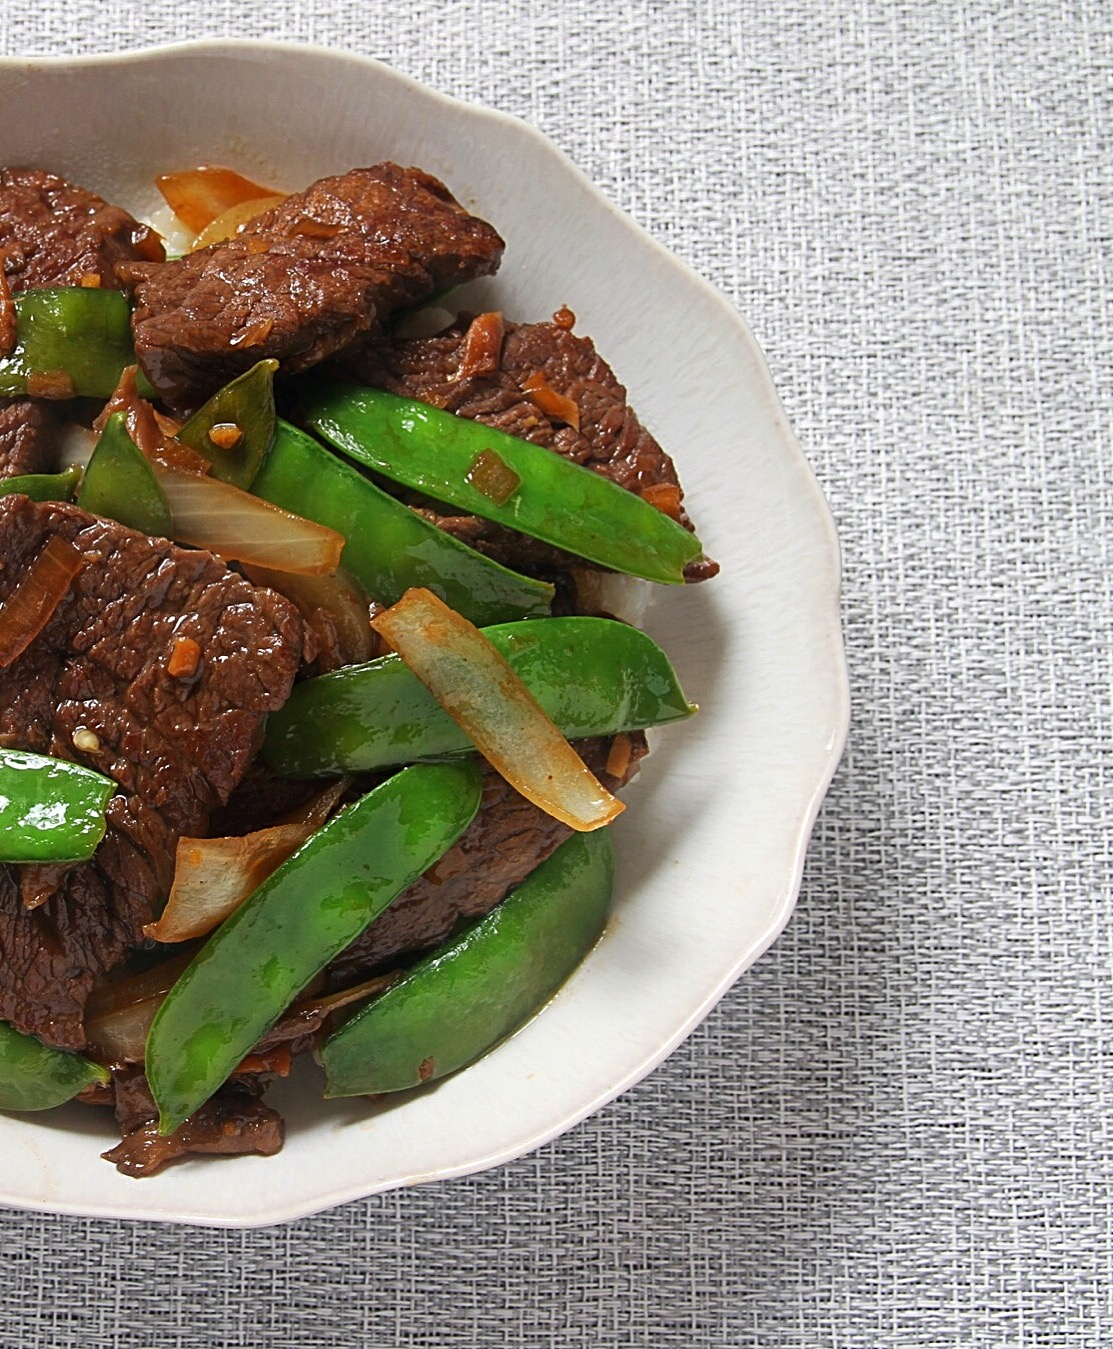 I was seriously missing this beef and snow pea stir fry the other day. I might add it to next week's plan! It was unbelievable.